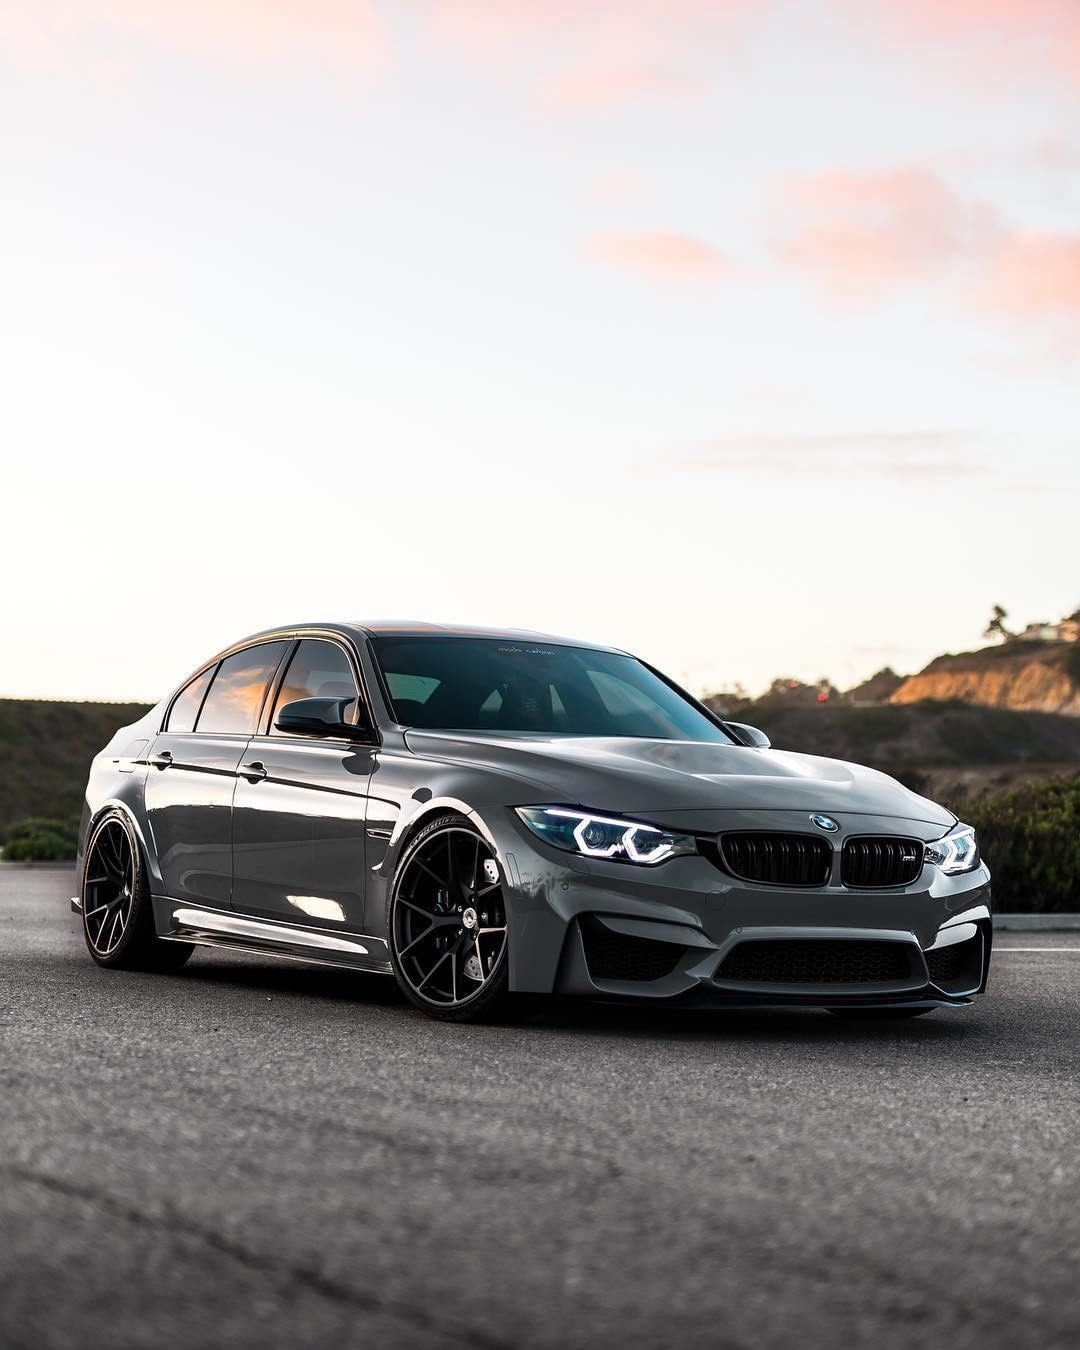 Handsome Is An Understatement The Bmw M3 Sedan Bmwrepost